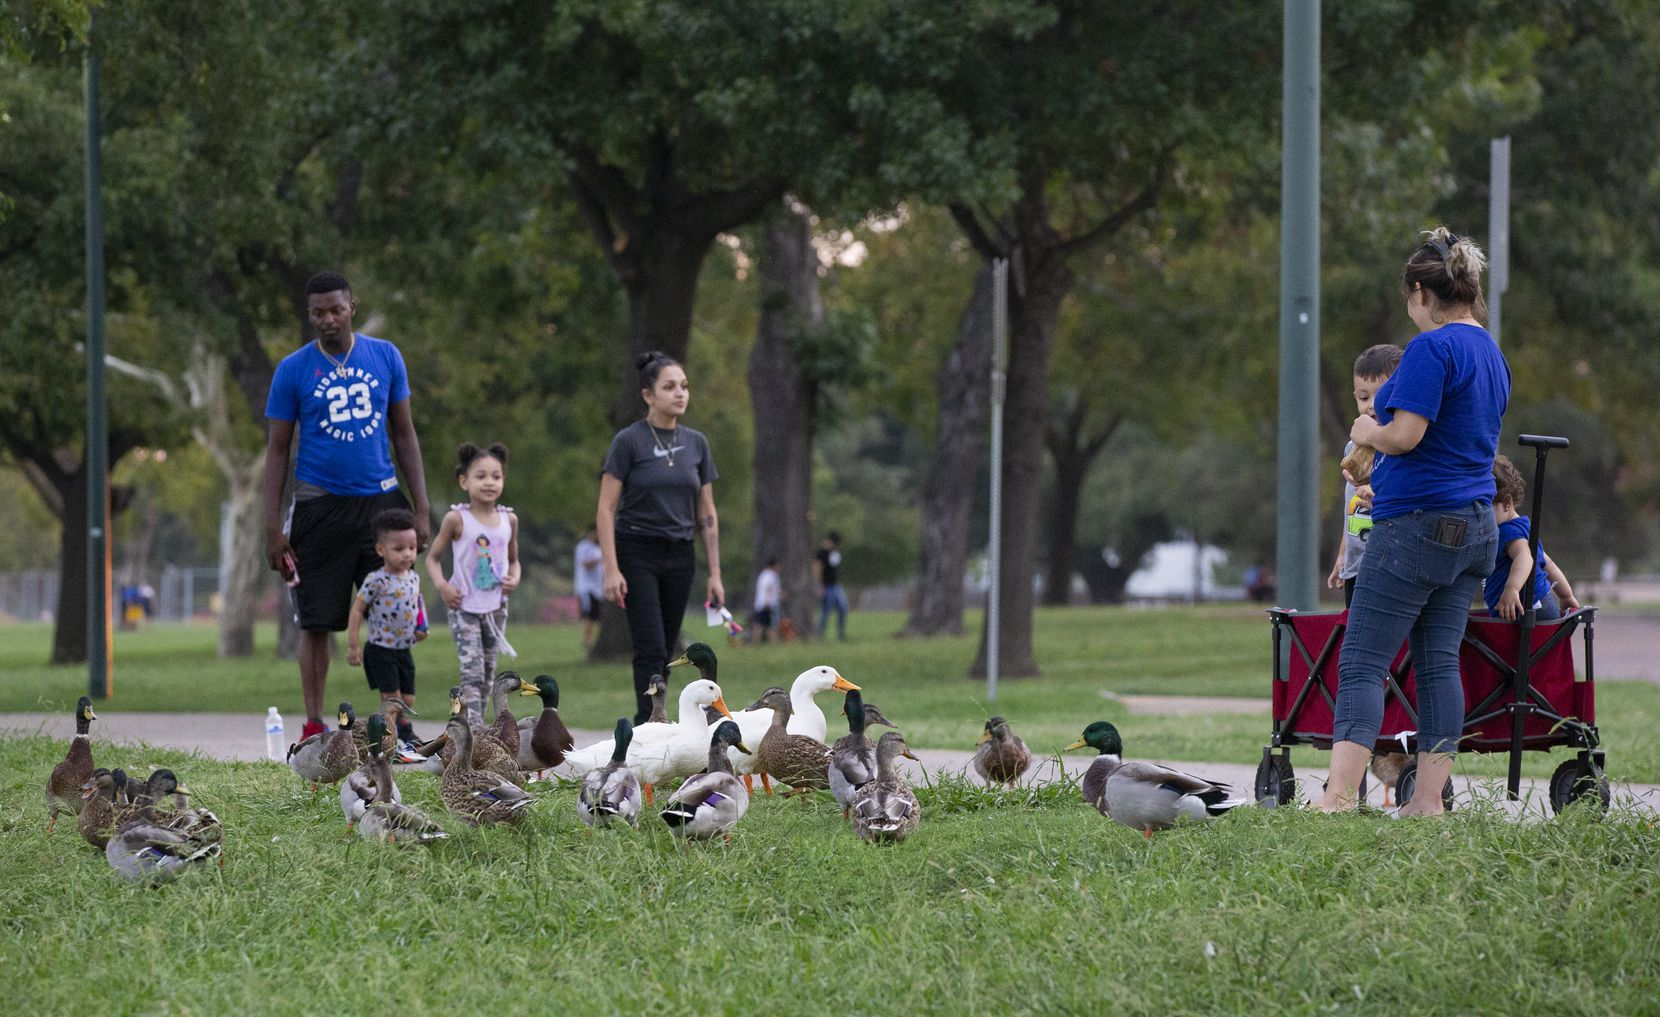 Families watch the ducks on the northern side of Bachman Lake Park. The park attracts people from all walks of life, including walkers, runners and bikers as well as rowers and anglers.